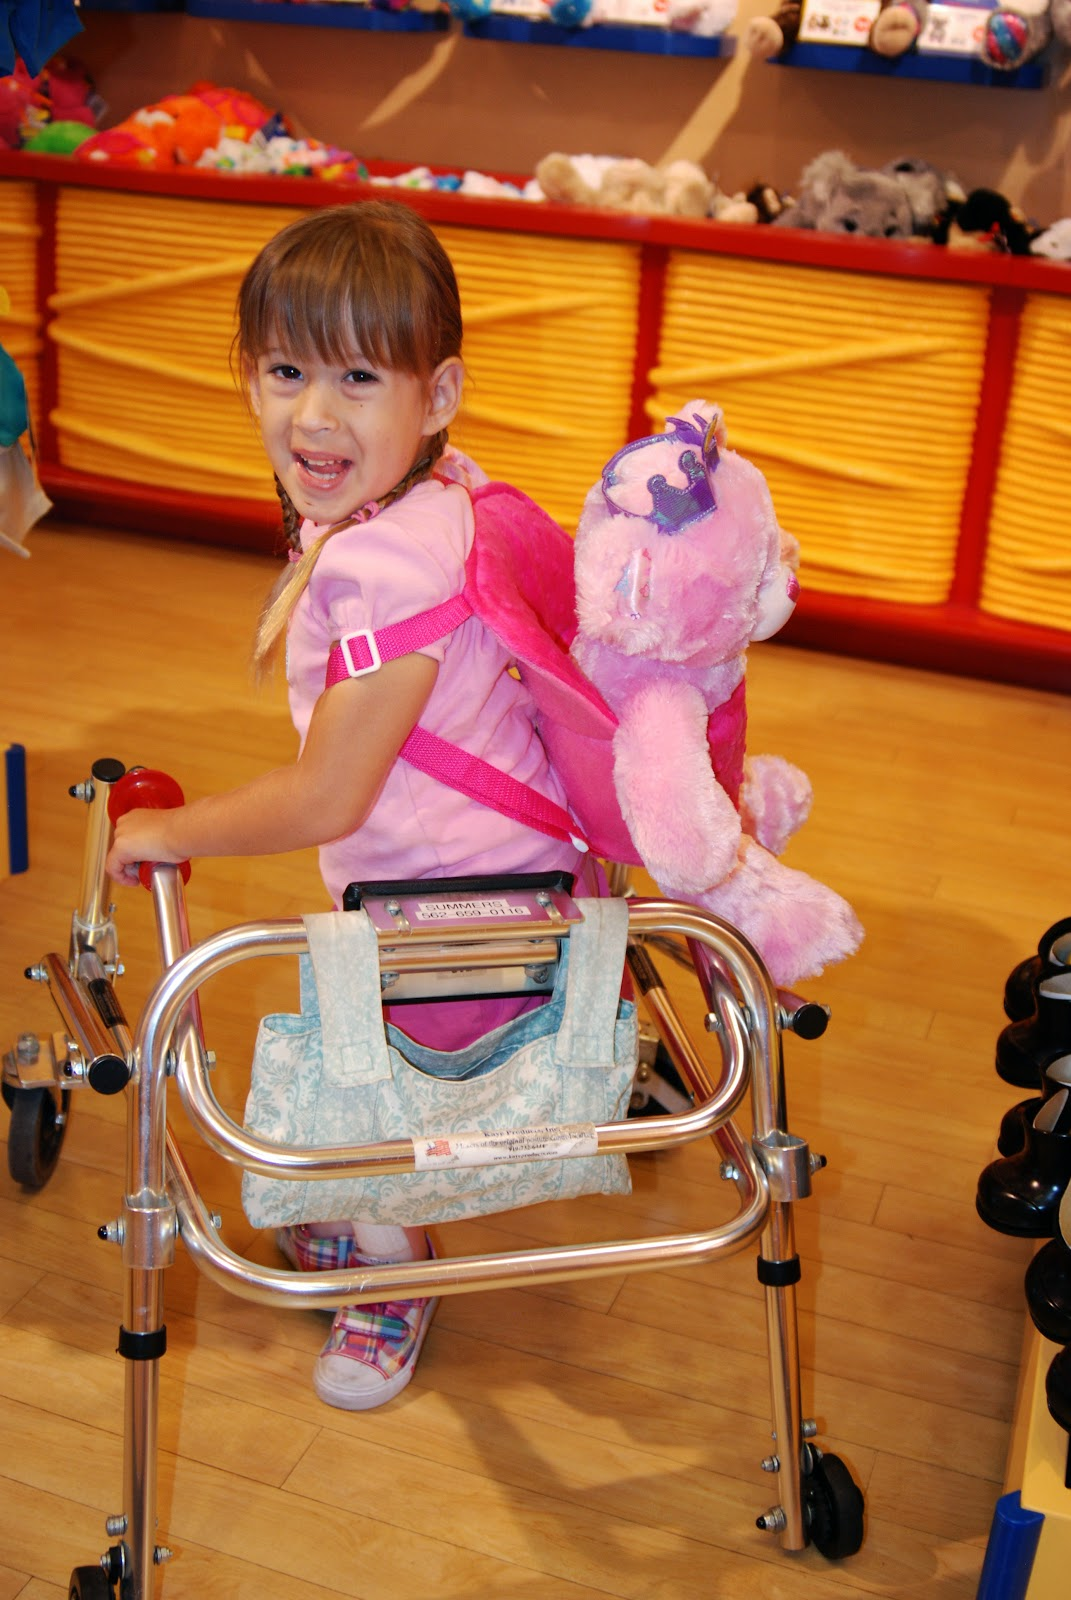 Annabelle grace flower summers annabelle leaving build a bear on her birthday july 29th she had a great time building her bear the store was super accessible and i was very impressed izmirmasajfo